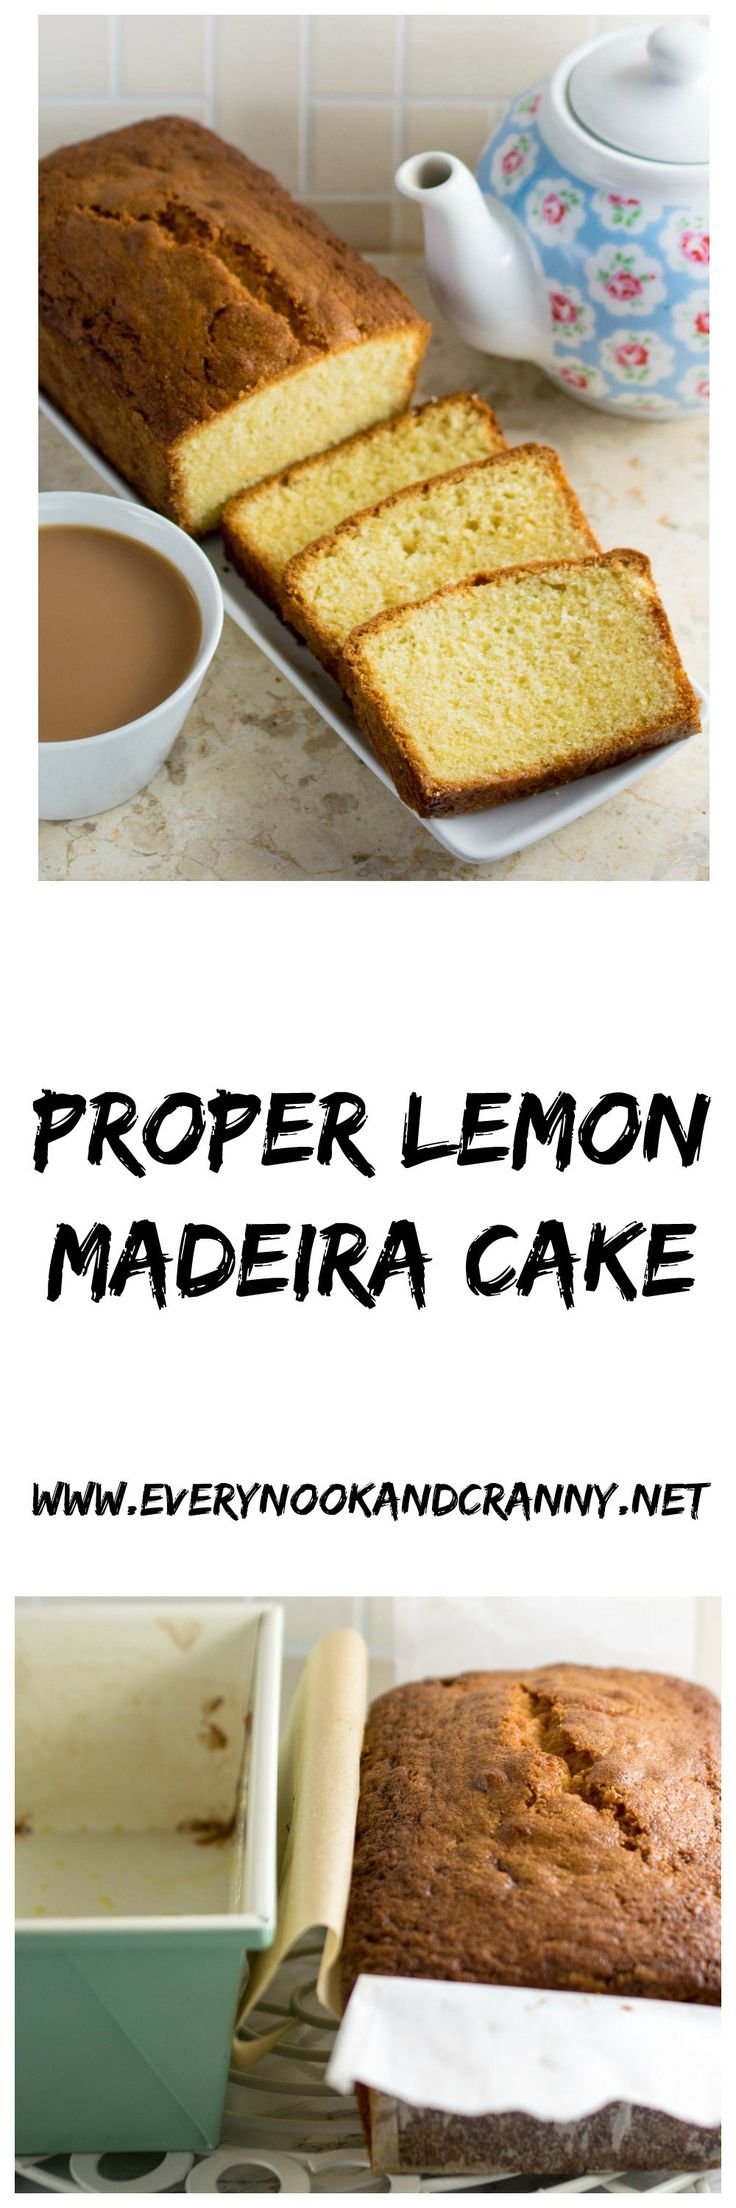 There are some recipes which are so classic as to become iconic. Victoria Sponges are a case in point. Anyone partial to a slice of this cake with their mid-afternoon coffee will have specific set of expectations ofwhat a true Victoria should taste like and there's nothing